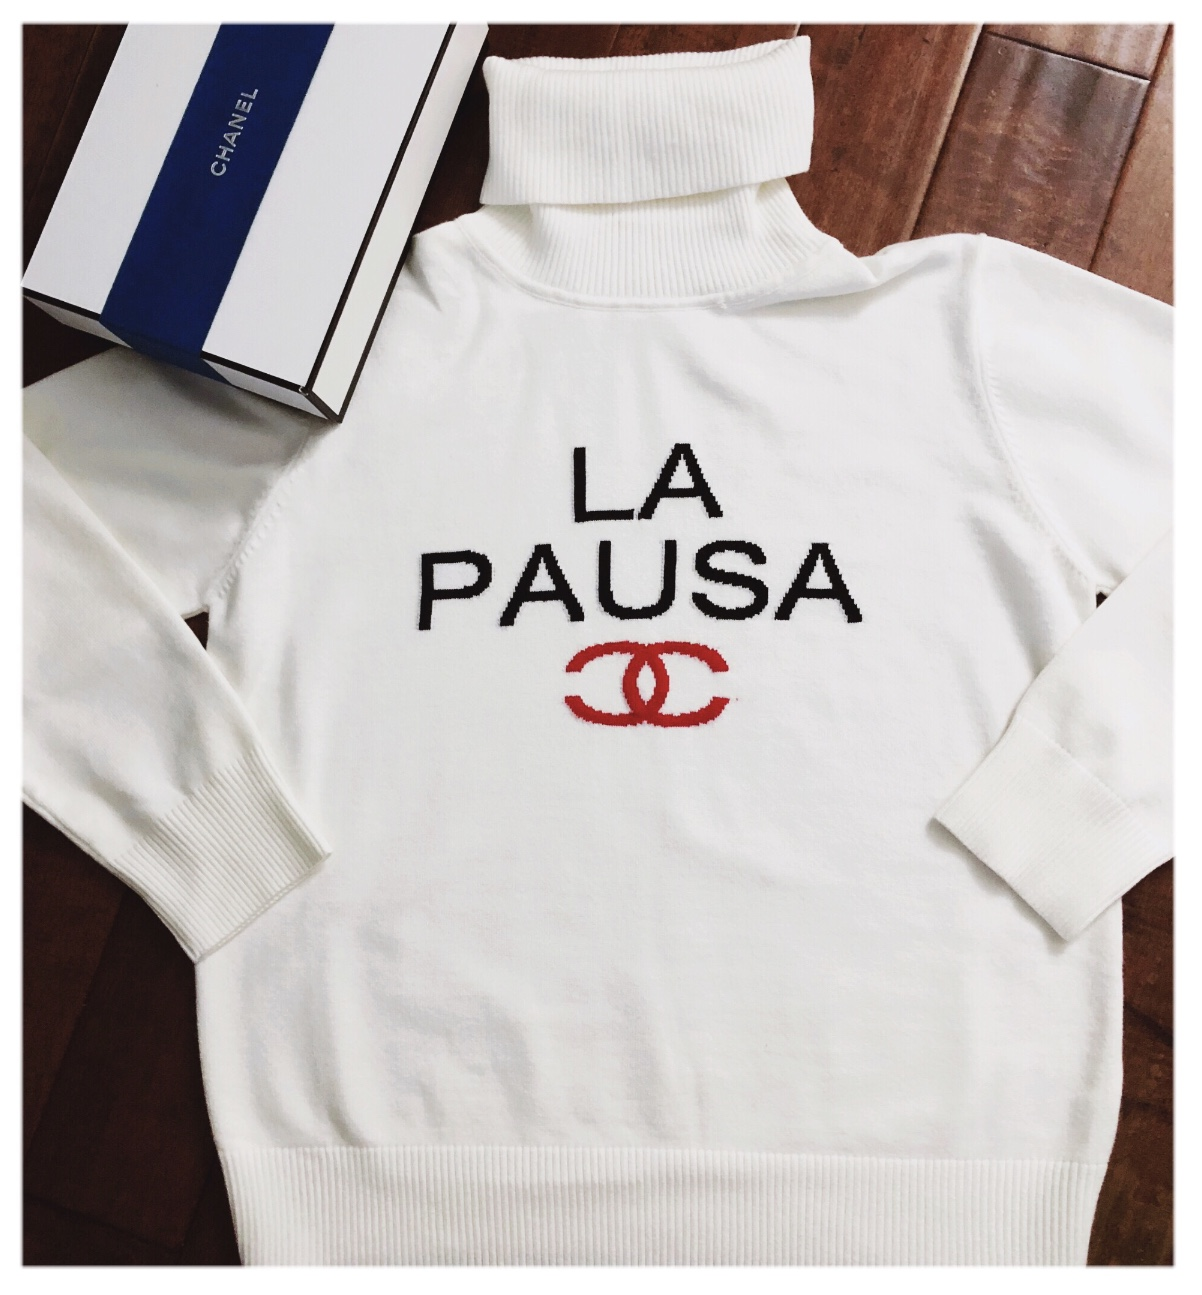 Womens Cruise 2019 La Pausa White Turtleneck Sweater Thread And